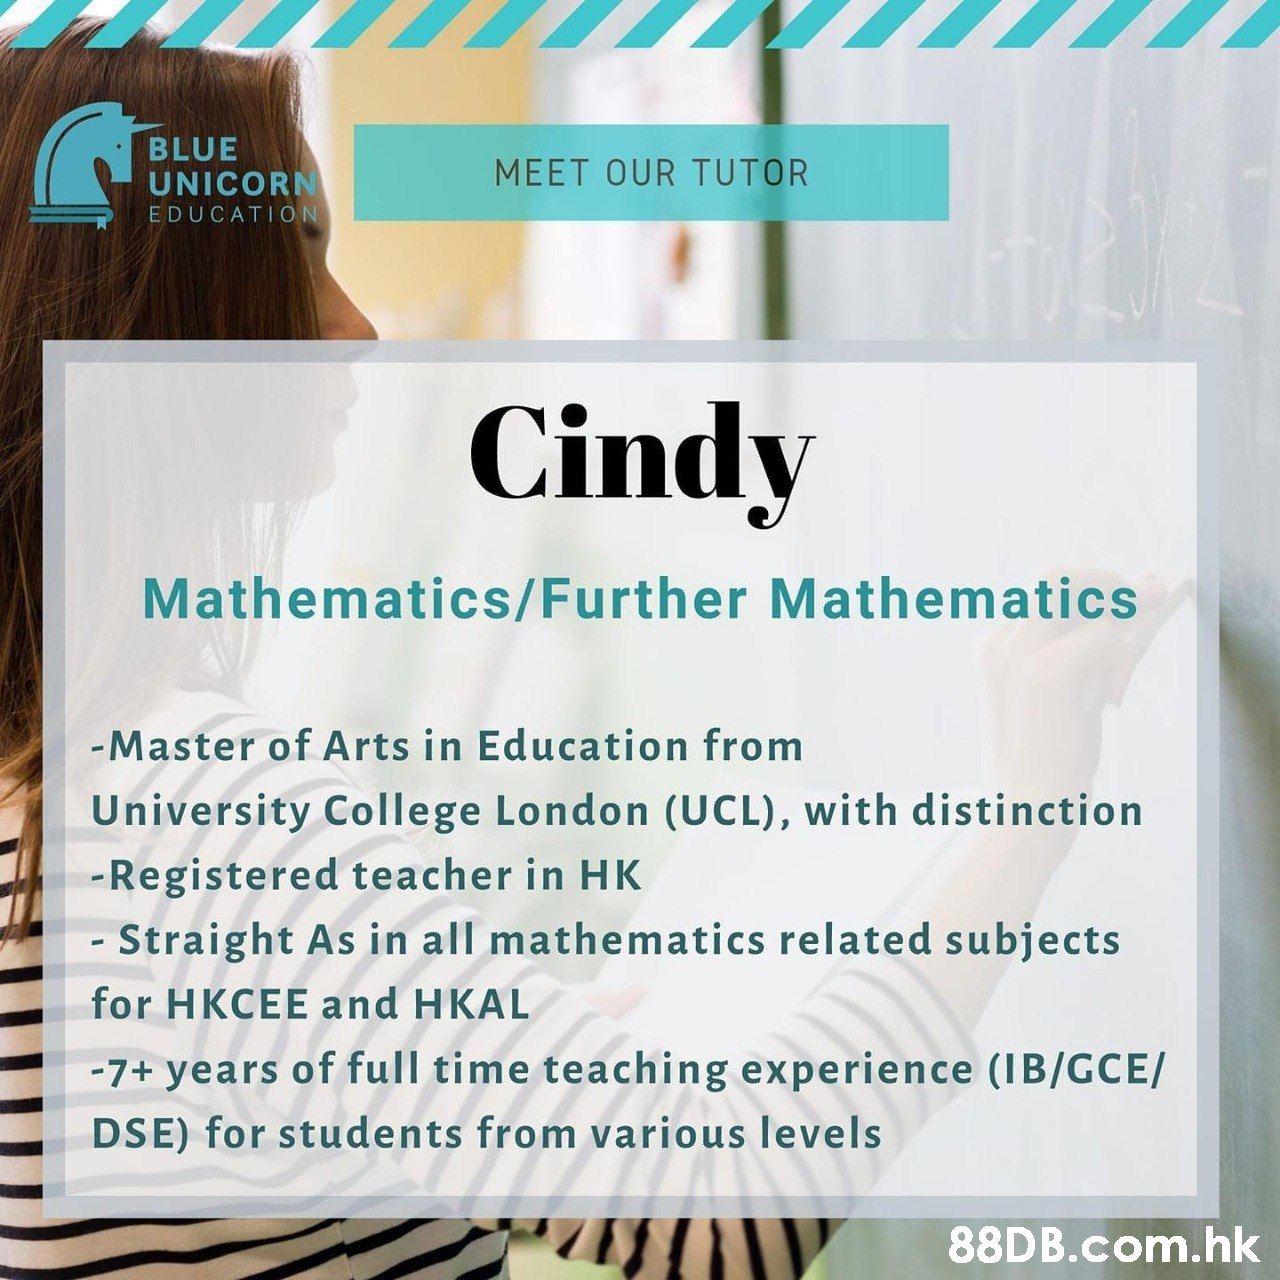 BLUE UNICORN EDUCATION MEET OUR TUTOR Cindy Mathematics/Further Mathematics -Master of Arts in Education from University College London (UCL), with distinction -Registered teacher in HK - Straight As in all mathematics related subjects for HKCEE and HKAL -7+ years of full time teaching experience (IB/GCE/ DSE) for students from various levels .hk  Text,Font,Product,Advertising,Flyer